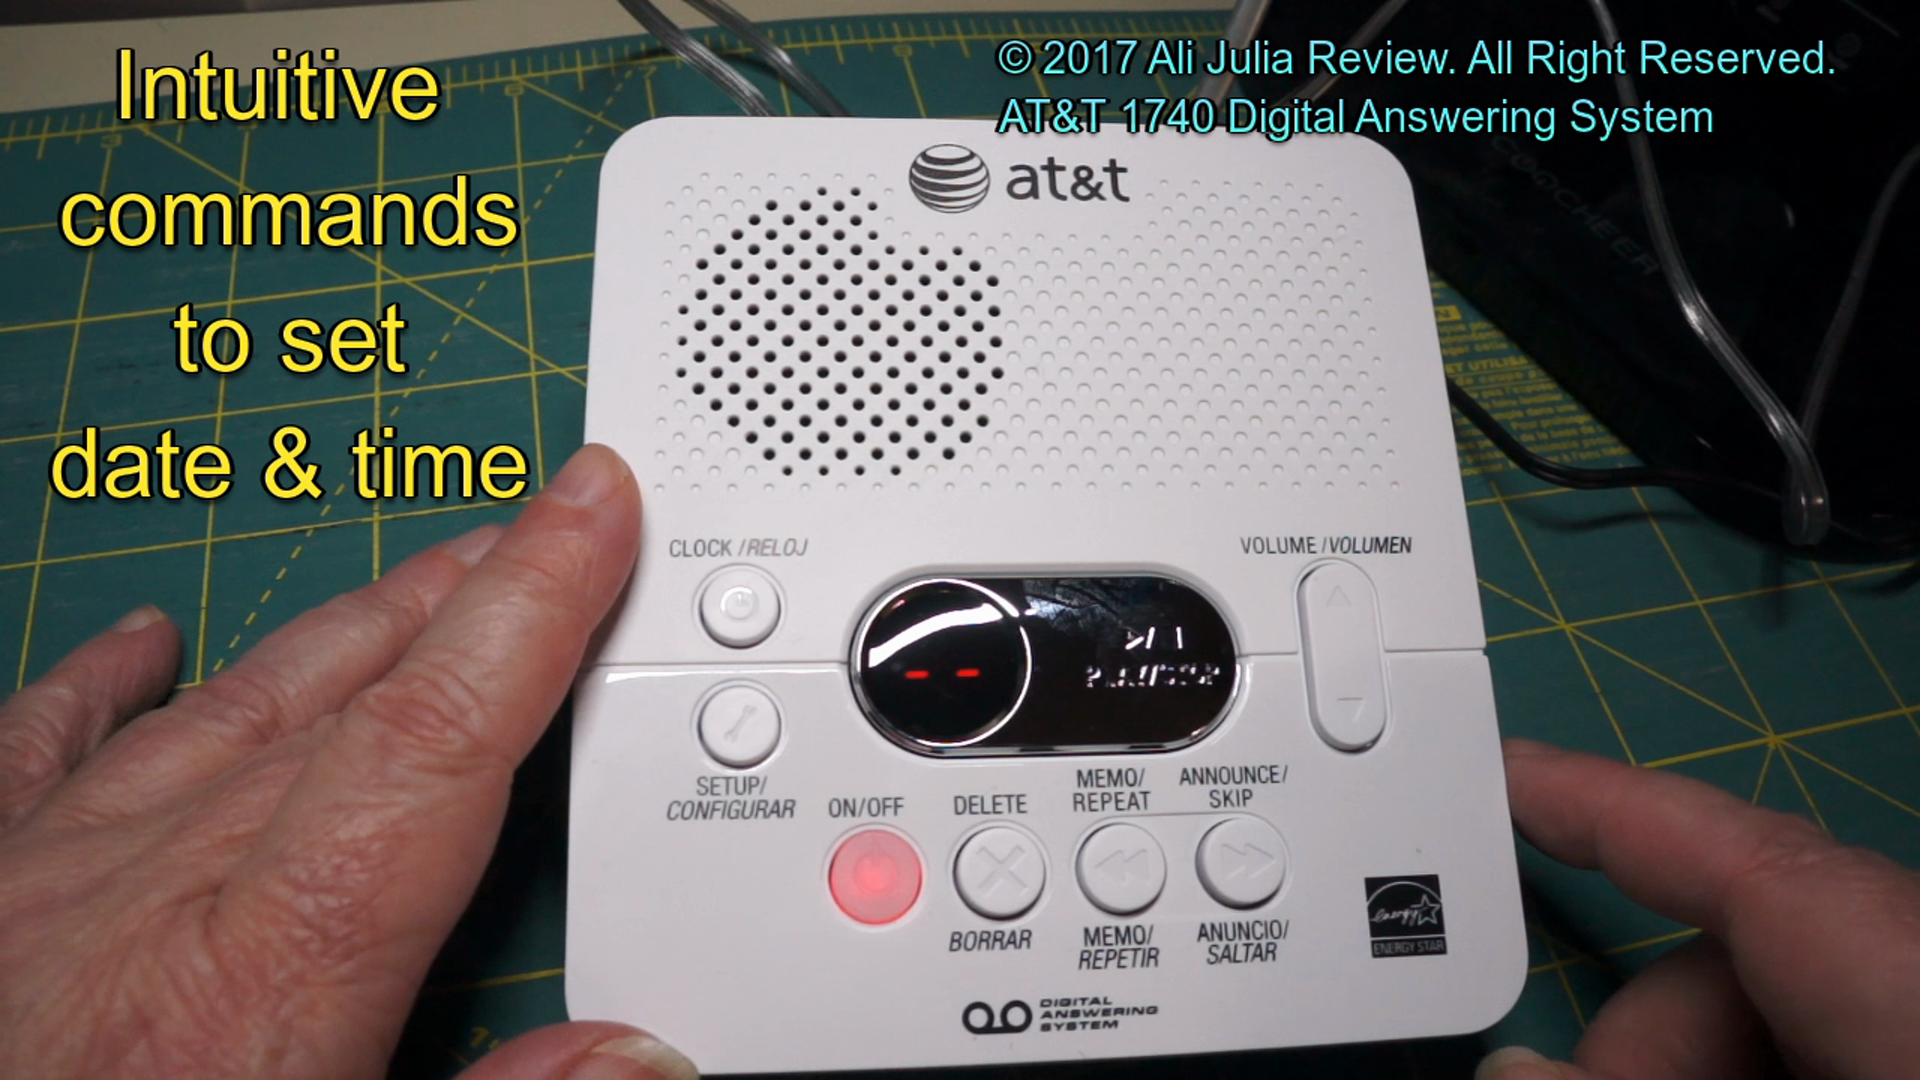 Customer Review: Clear recording, can be muted so it makes no noise when the call is recorded See full review